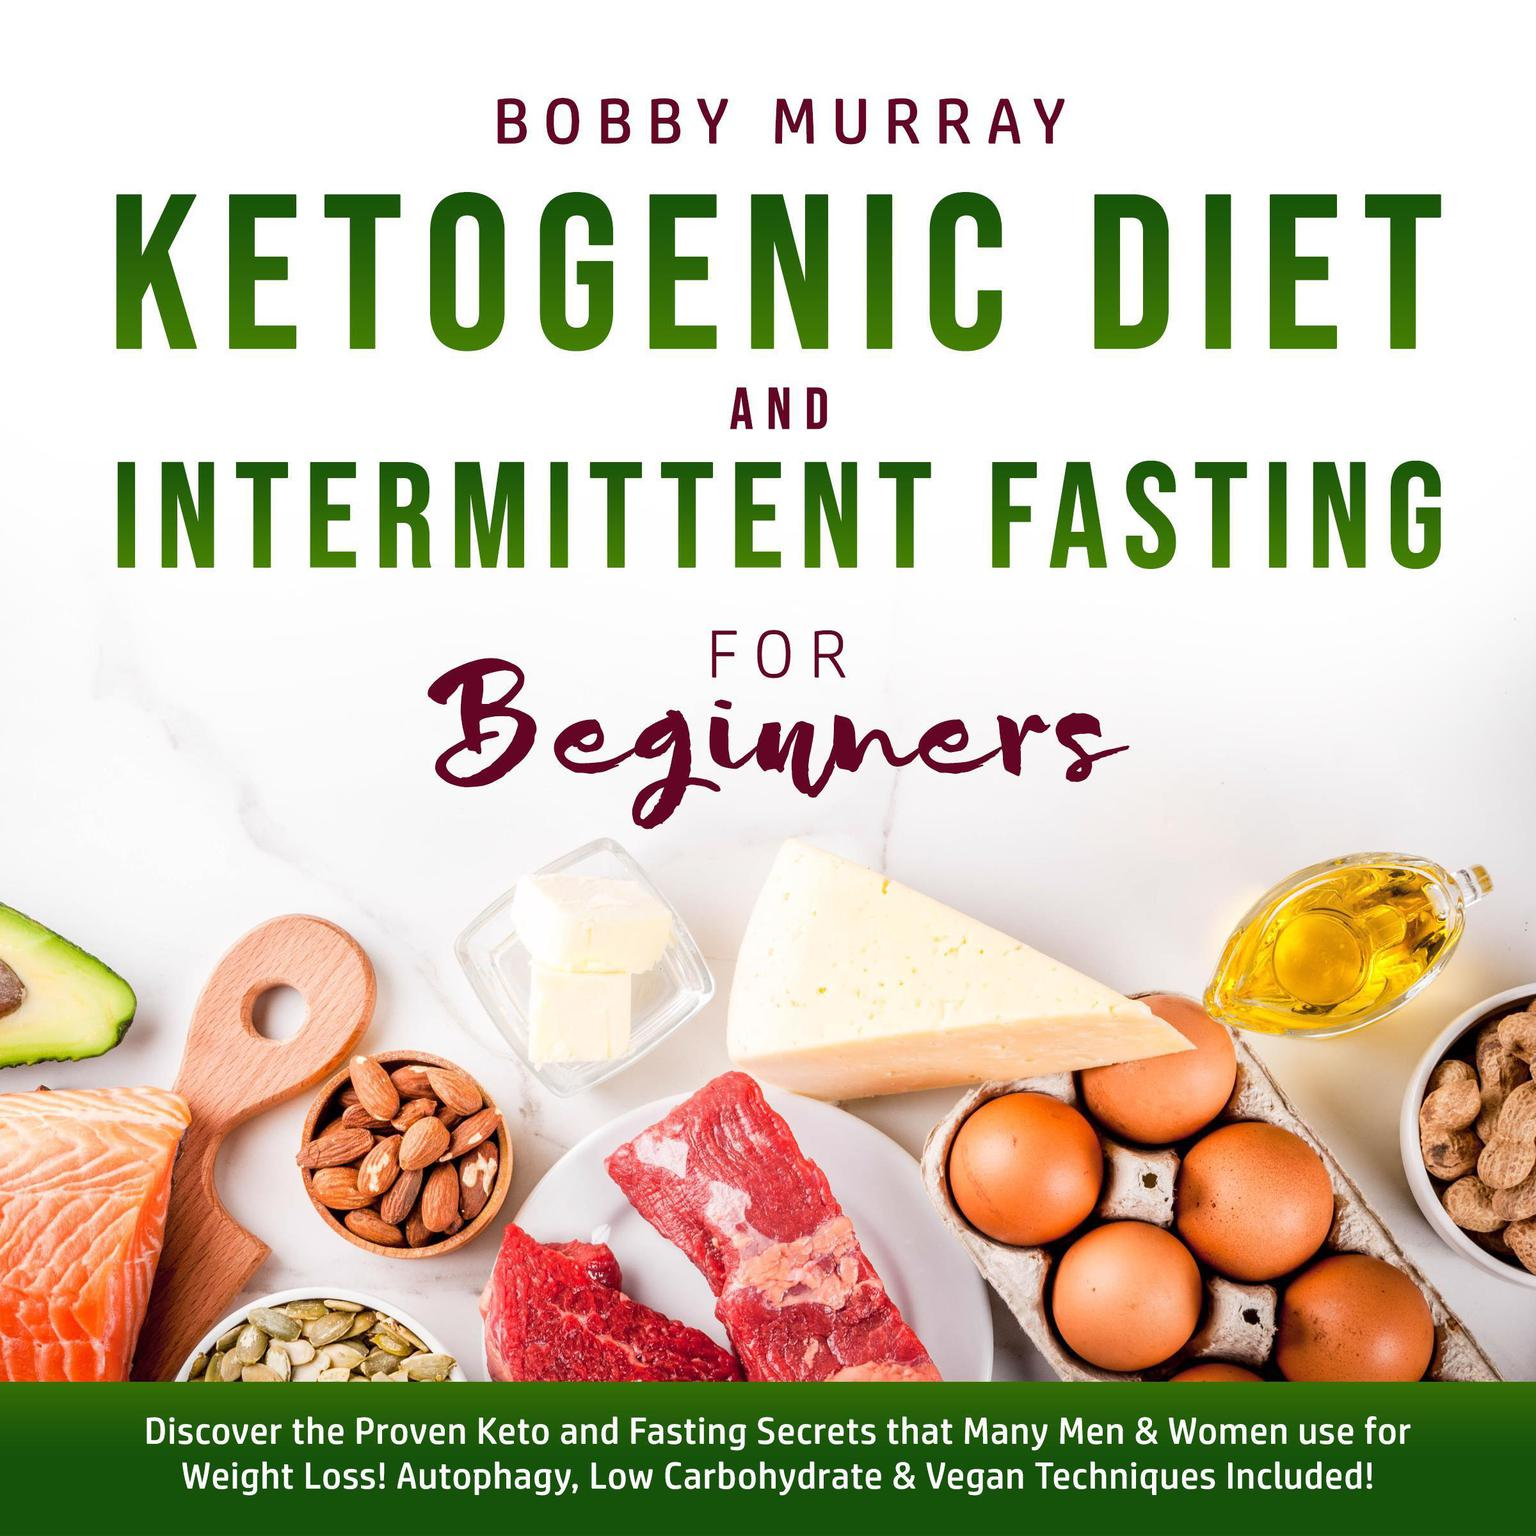 Ketogenic Diet and Intermittent Fasting for Beginners: Discover the Proven Keto and Fasting Secrets that Many Men & Women use for Weight Loss! Autophagy, Low Carbohydrate & Vegan Techniques Included! Audiobook, by Bobby Murray